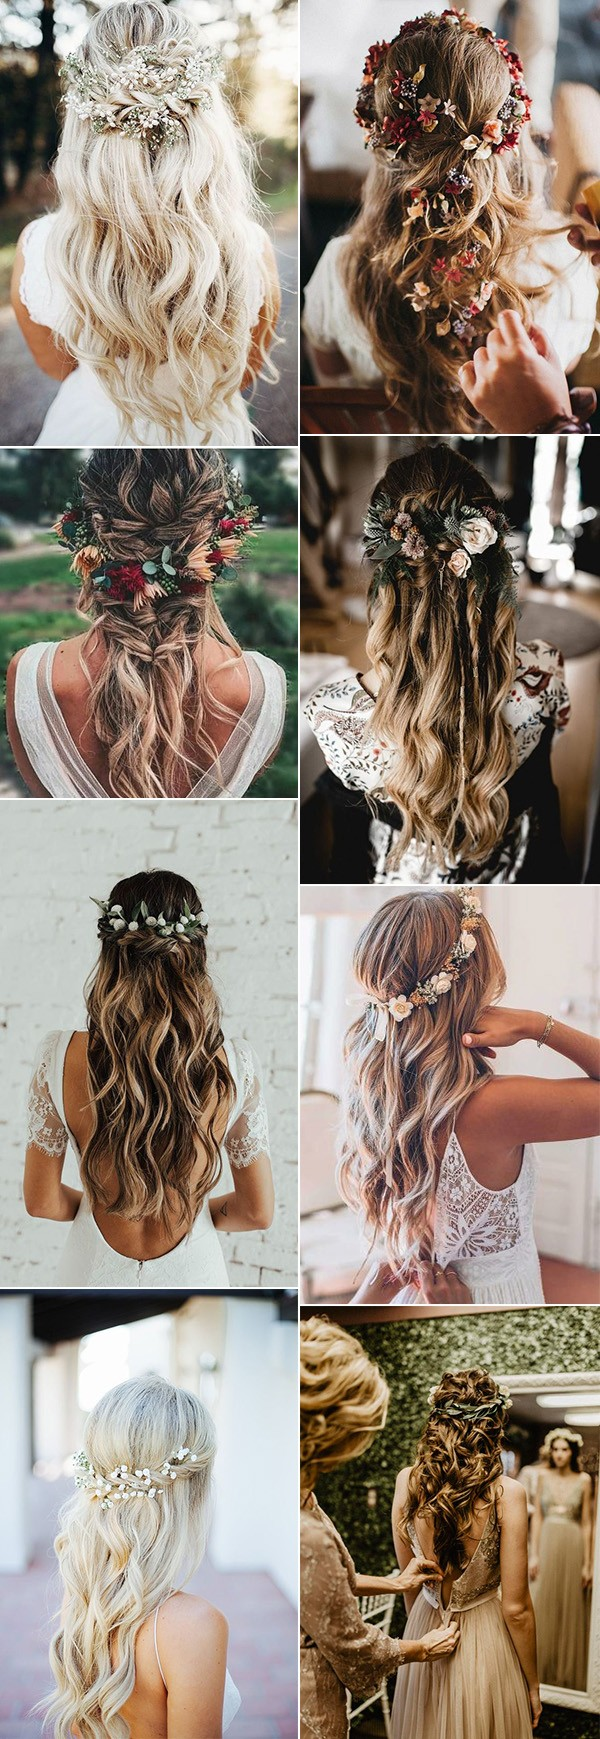 half up half down wedding hairstyles with flowers